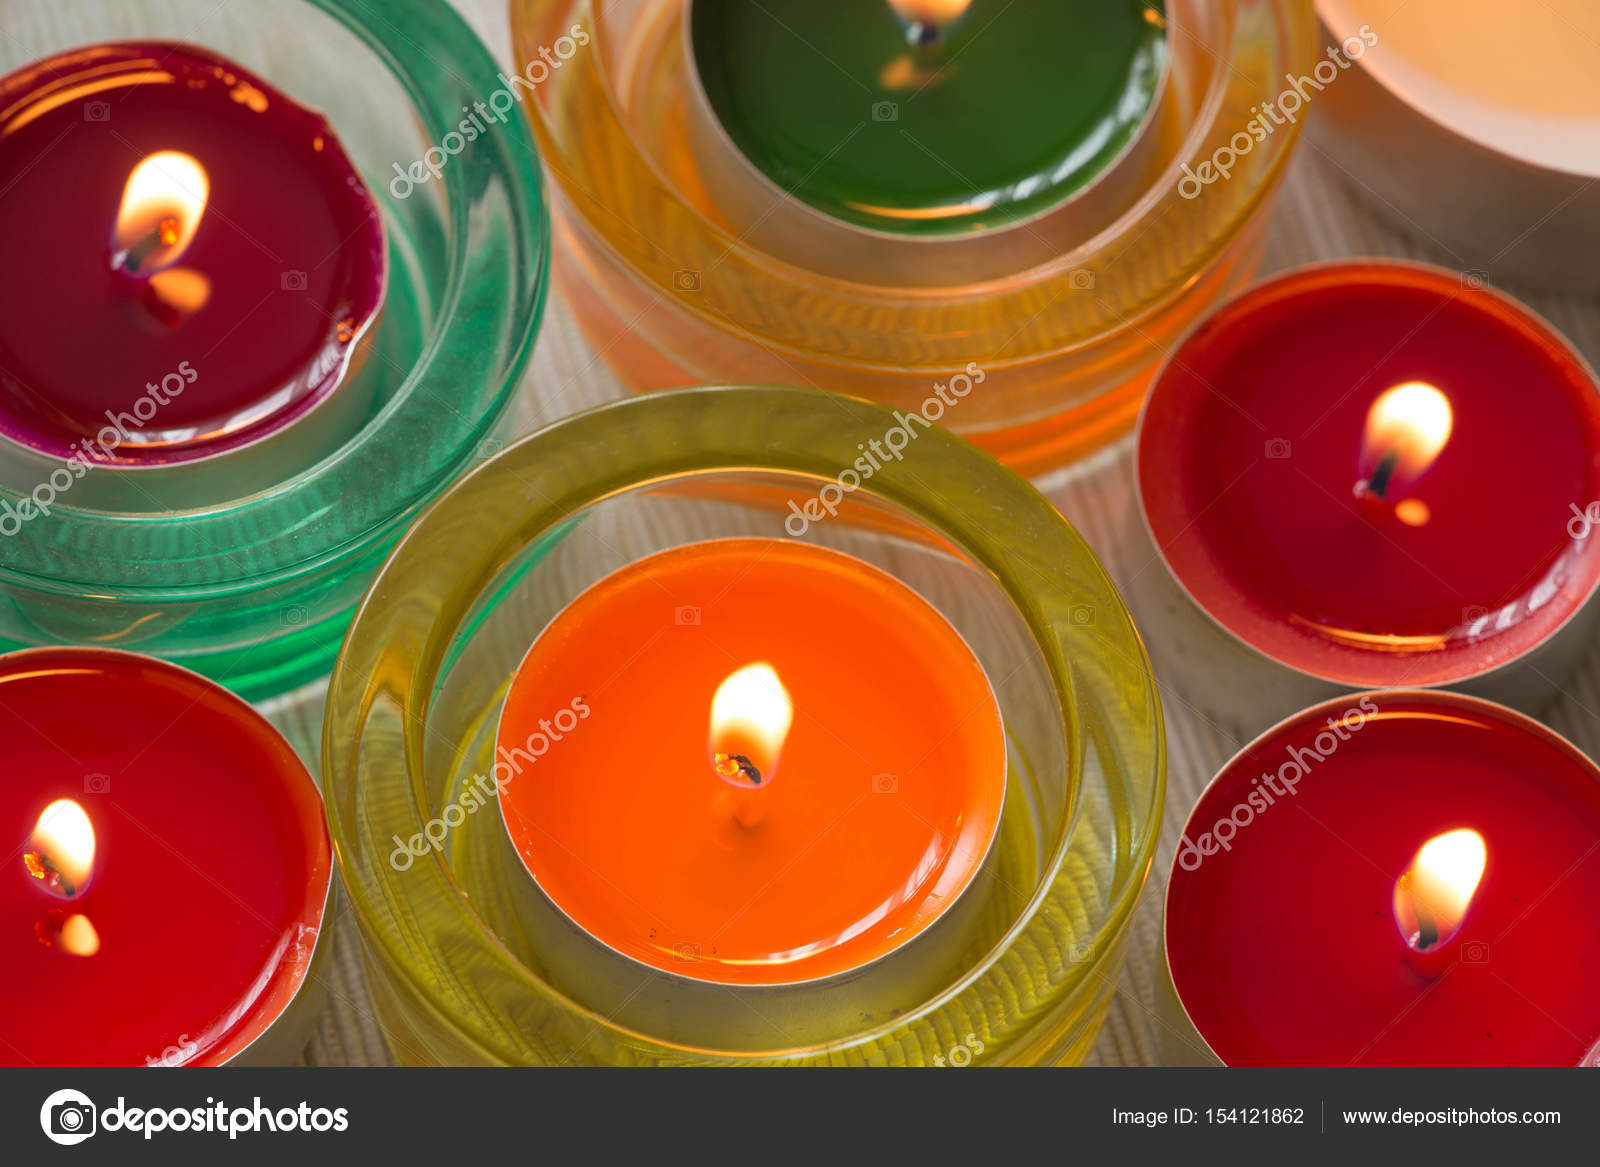 Candele colorate hygge tempo foto stock rochu 2008 for Candele colorate